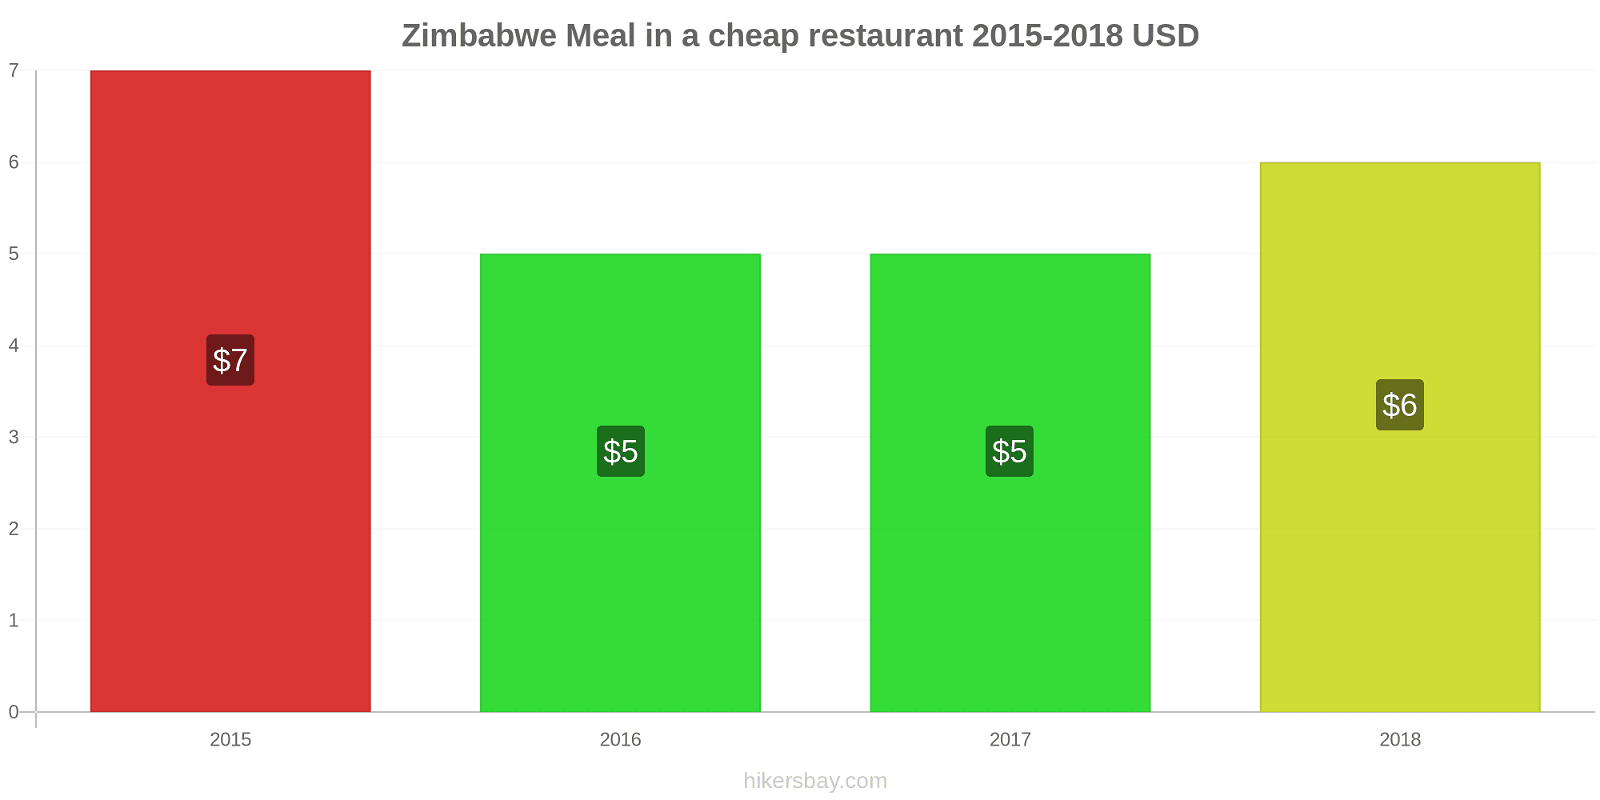 Zimbabwe price changes Meal in a cheap restaurant hikersbay.com